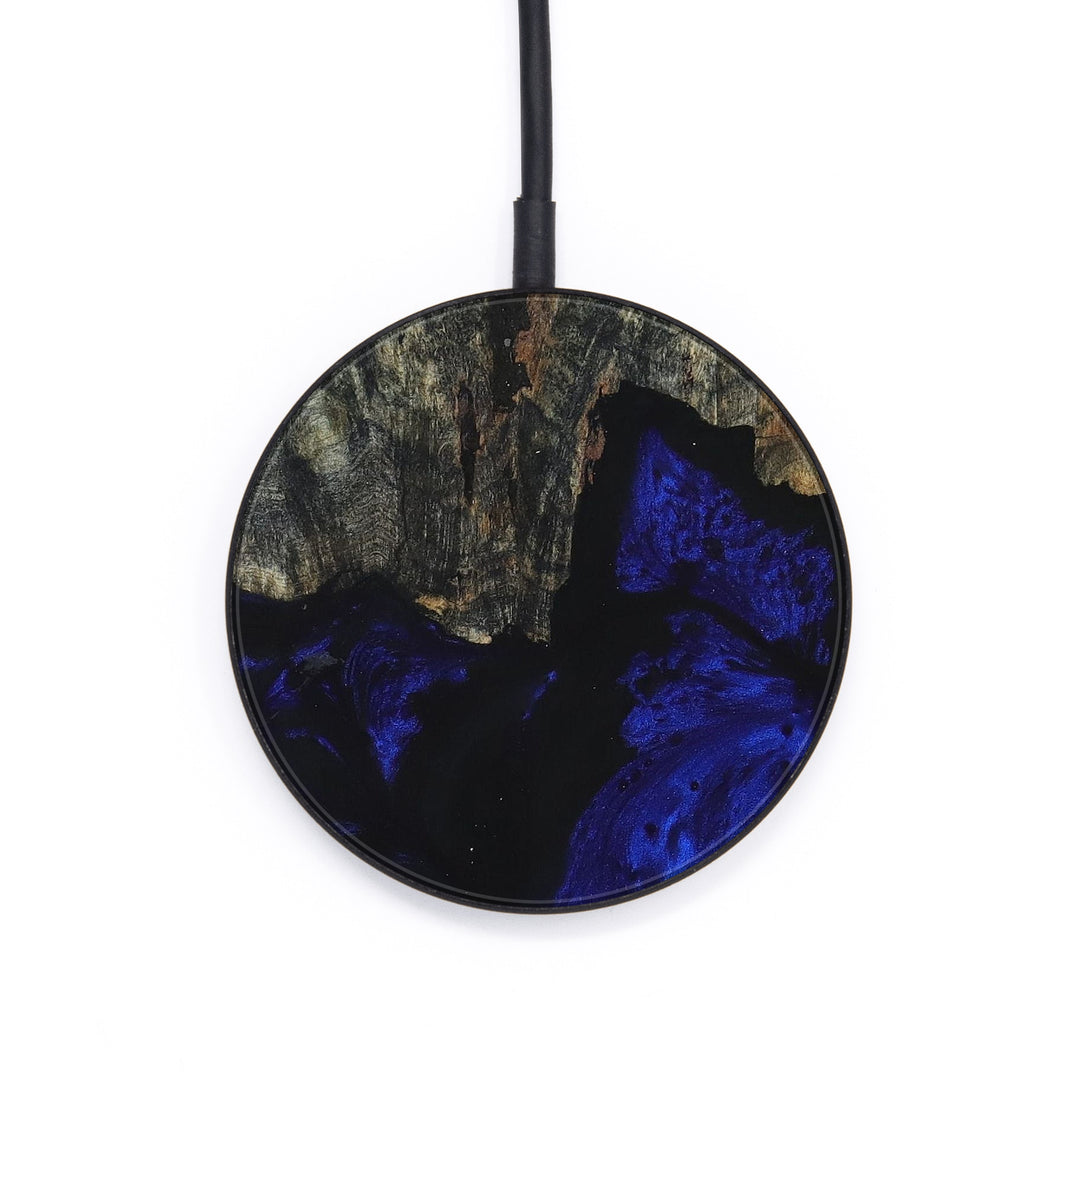 Circle Wood+Resin Wireless Charger - Inquire (Dark Blue, 393341)